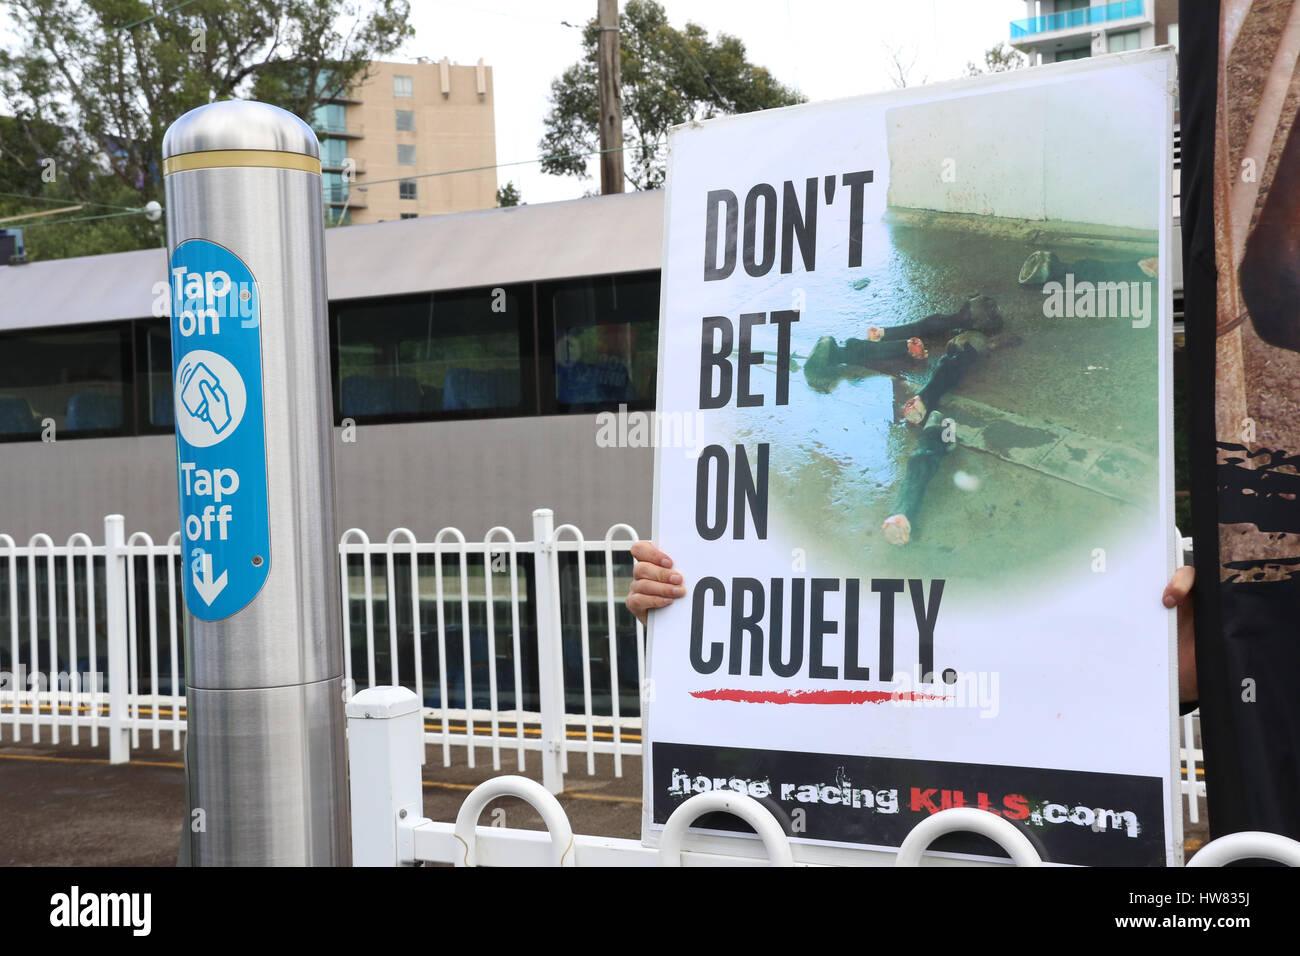 Sydney, Australia. 18 March 2017. Animal rights activists protest at Rosehill Station against horse racing on Golden Stock Photo